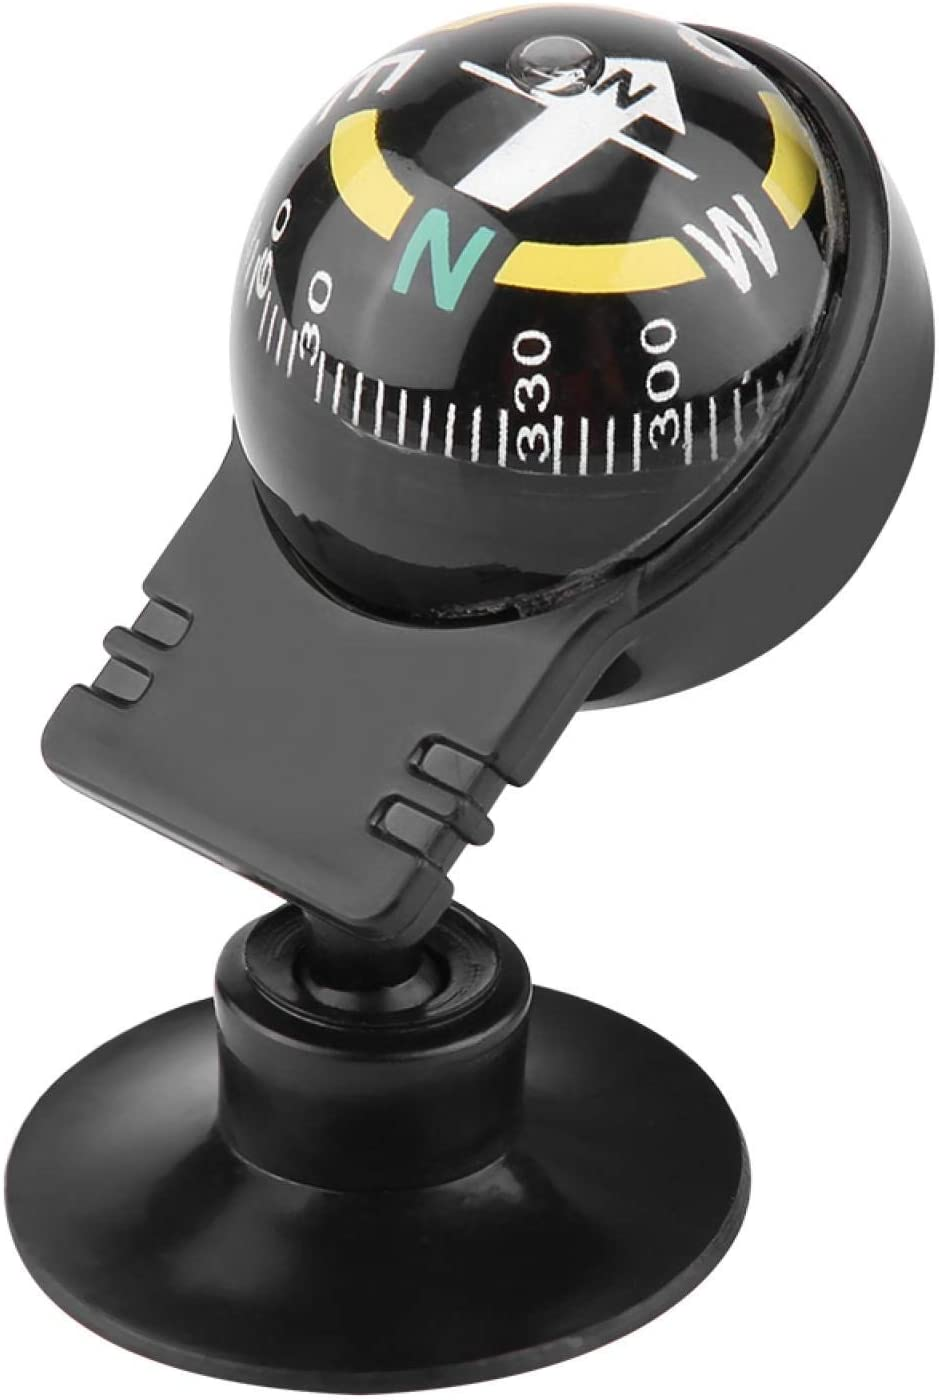 WNSC All items in the store Portable Dash Mount Compass Max 62% OFF Plastic Dashboard Com